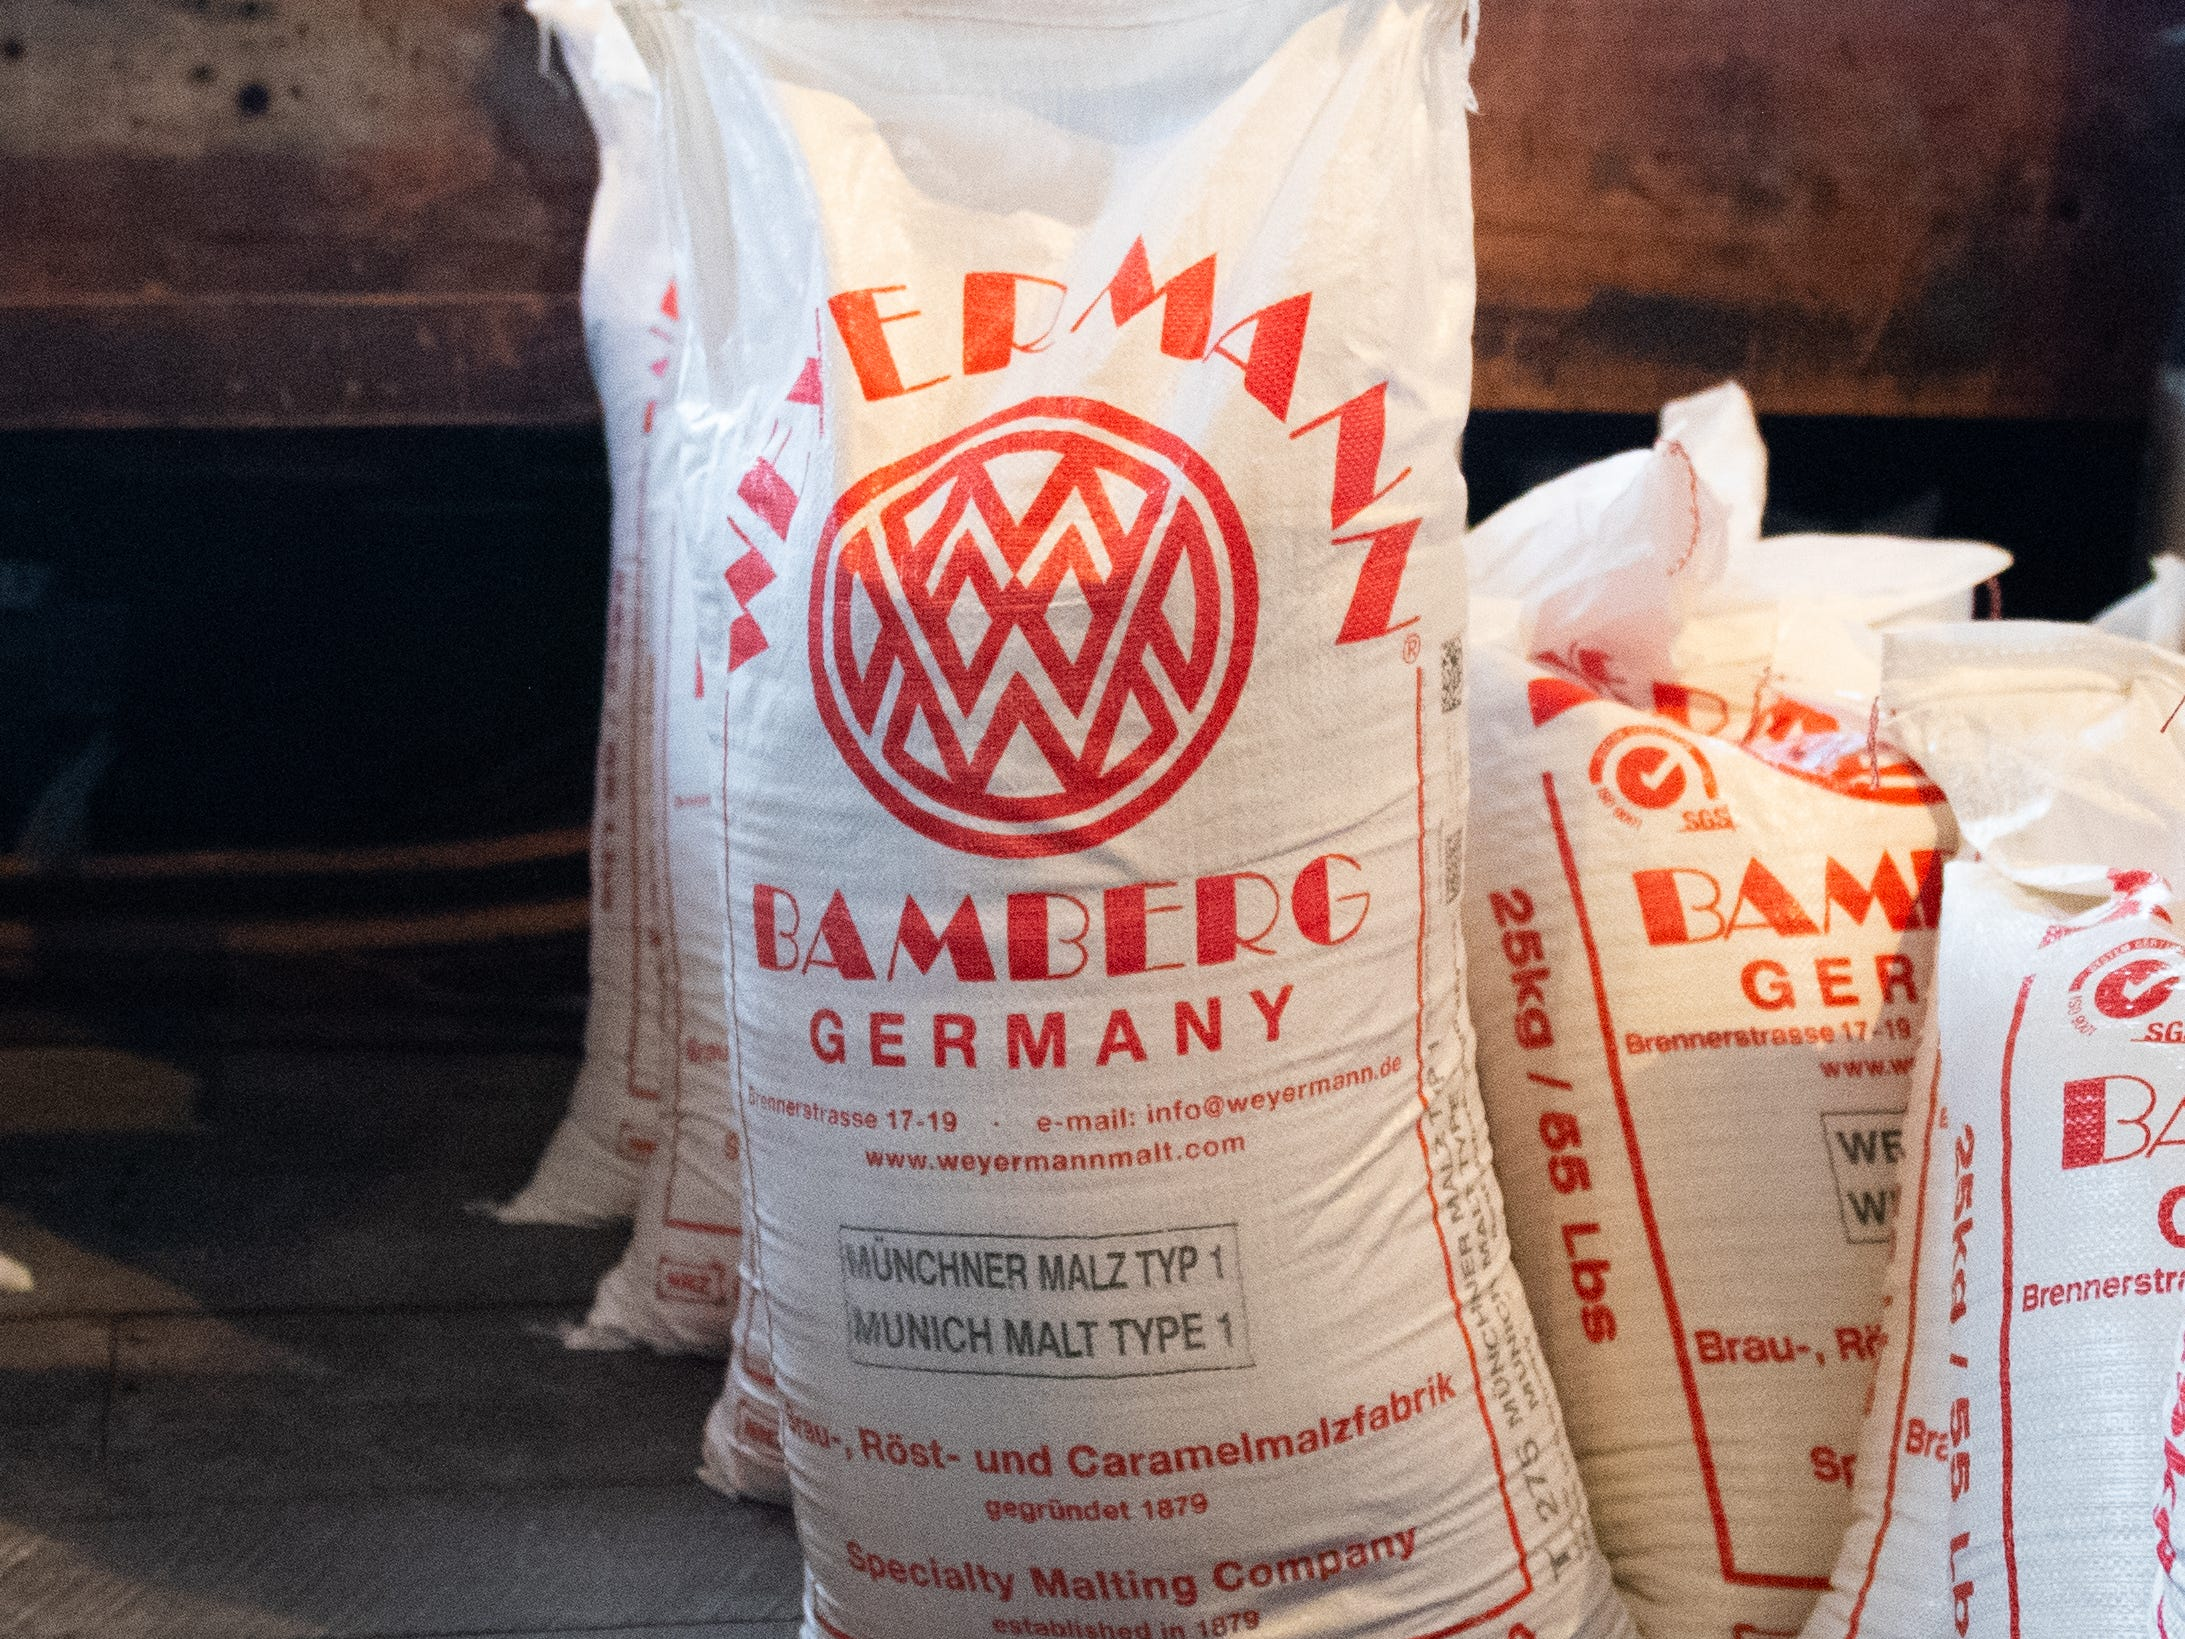 This German malt is in the back of the Cooper Shed at Bube's Brewery, February 22, 2019.